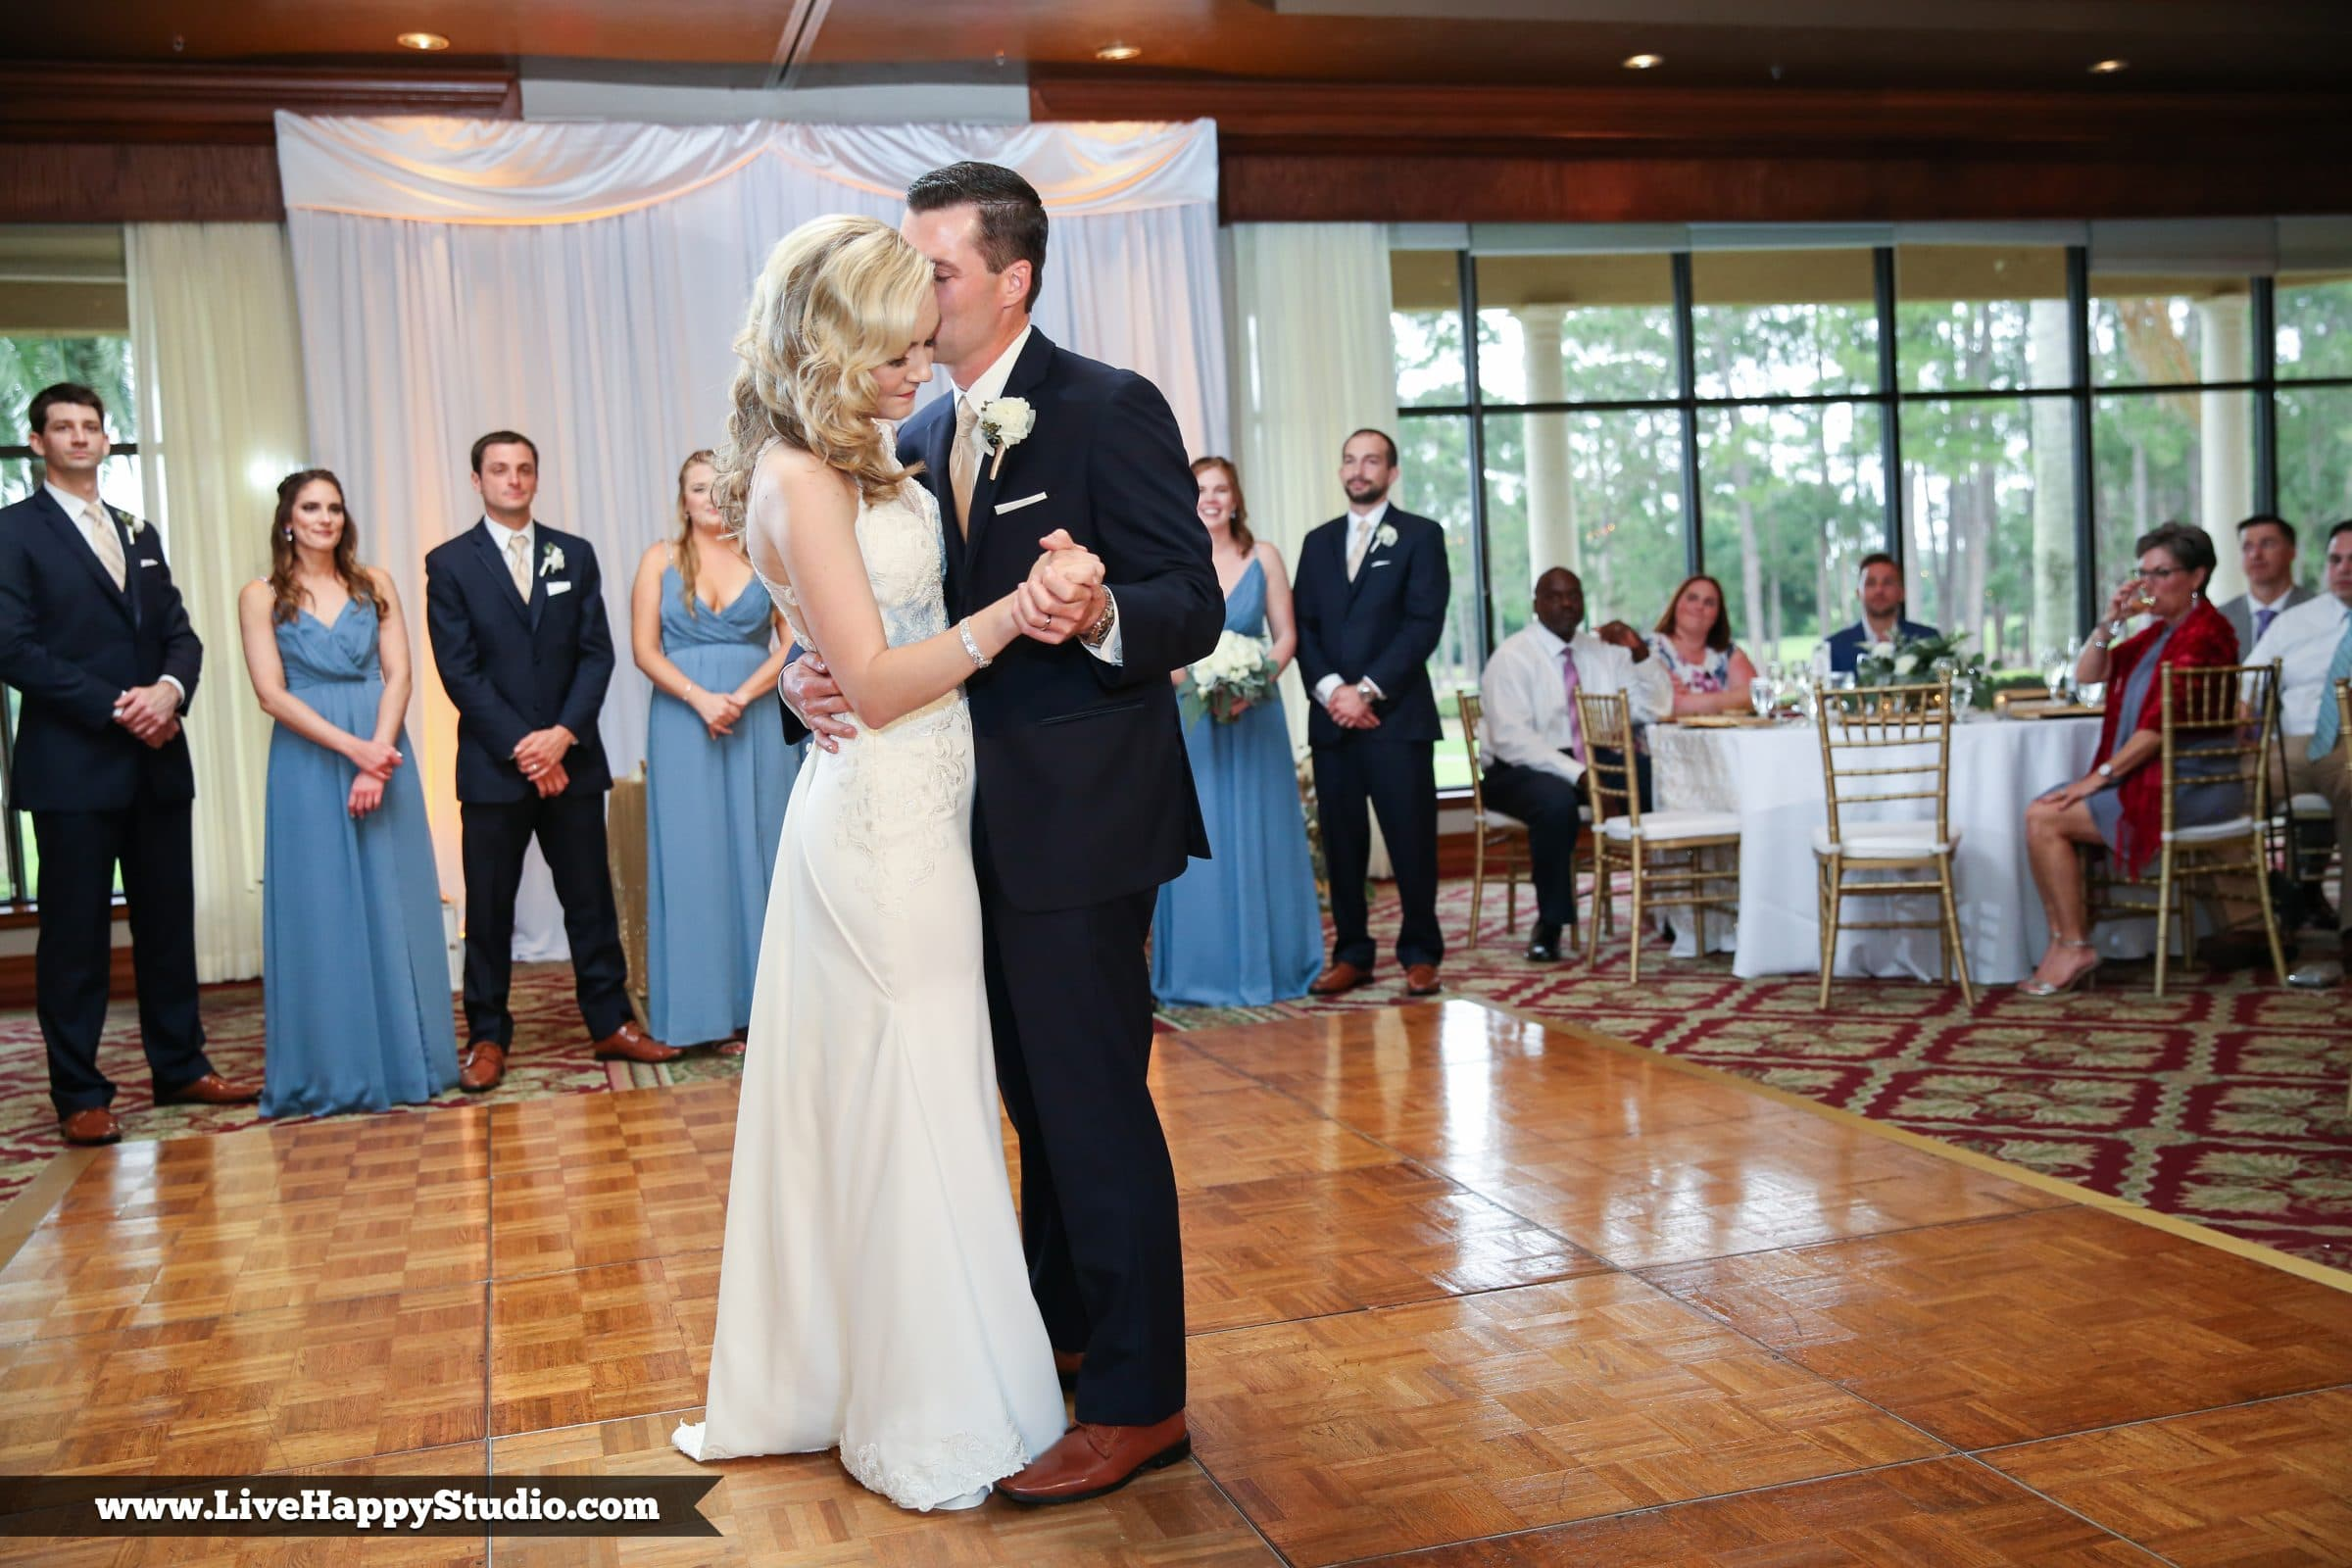 Groom kissing bride on cheek during first dance